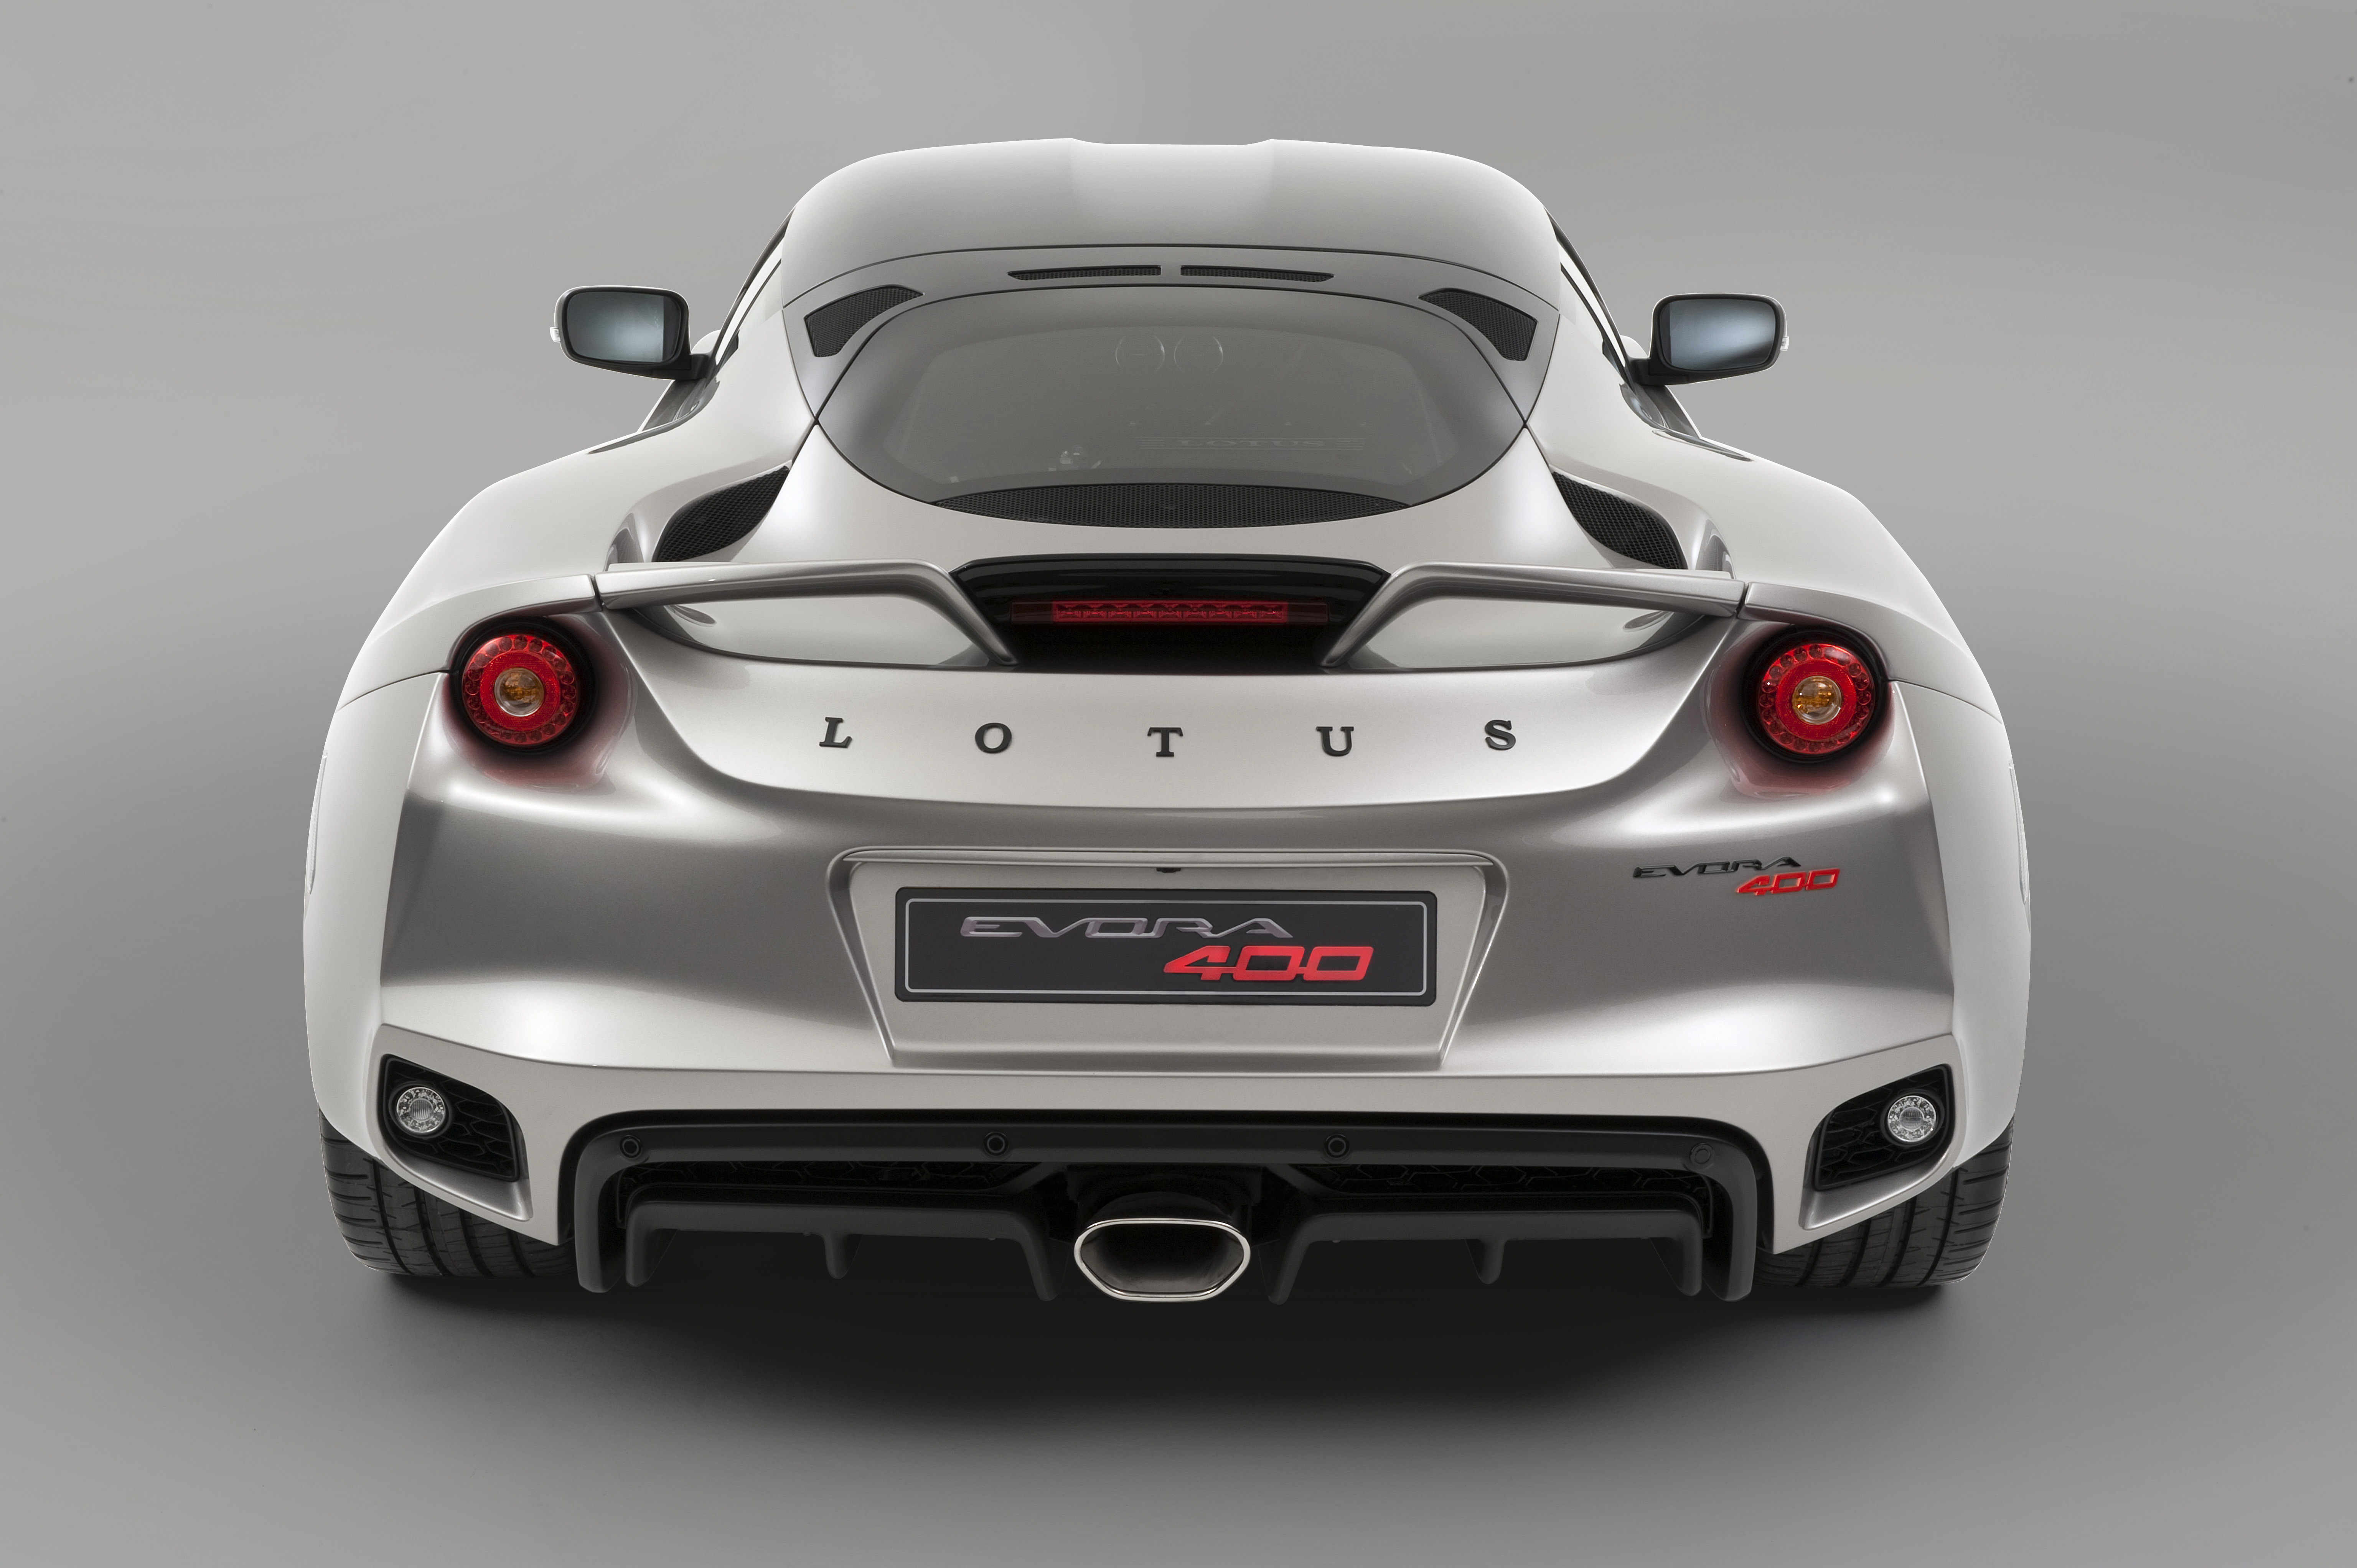 lotus evora 400 � fastest production lotus revealed image